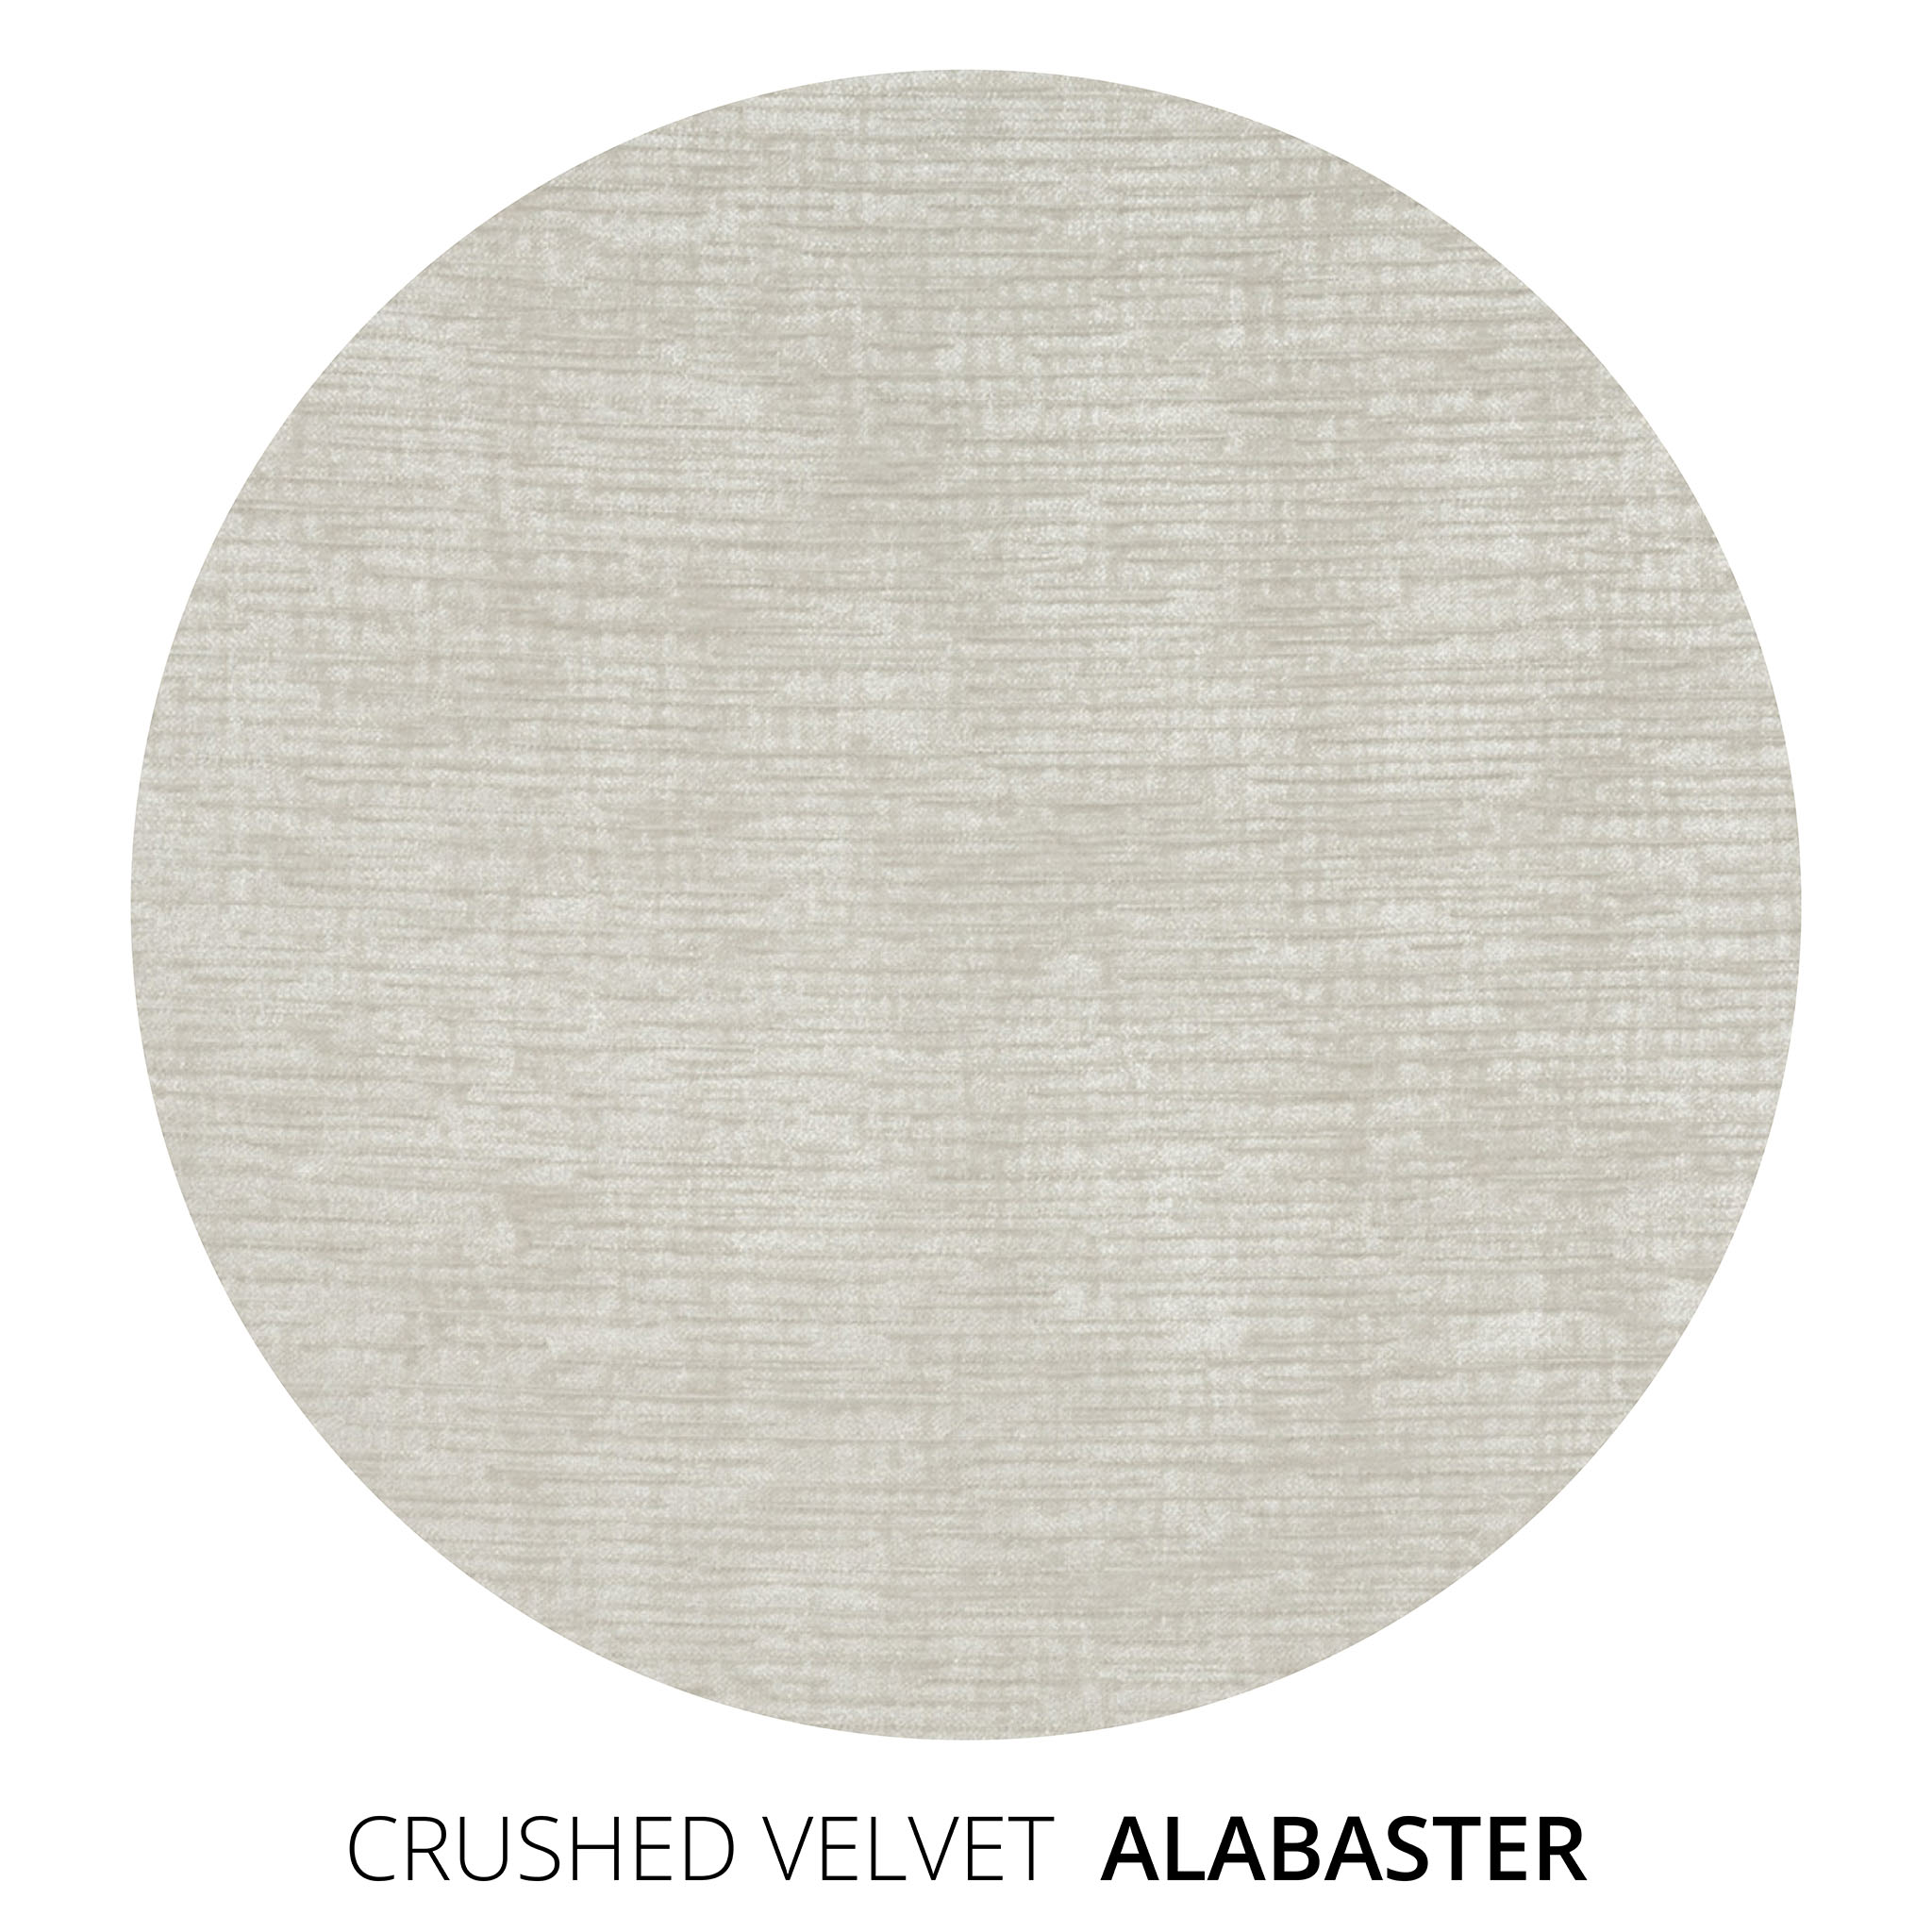 Alabaster Crushed Velvet Swatch